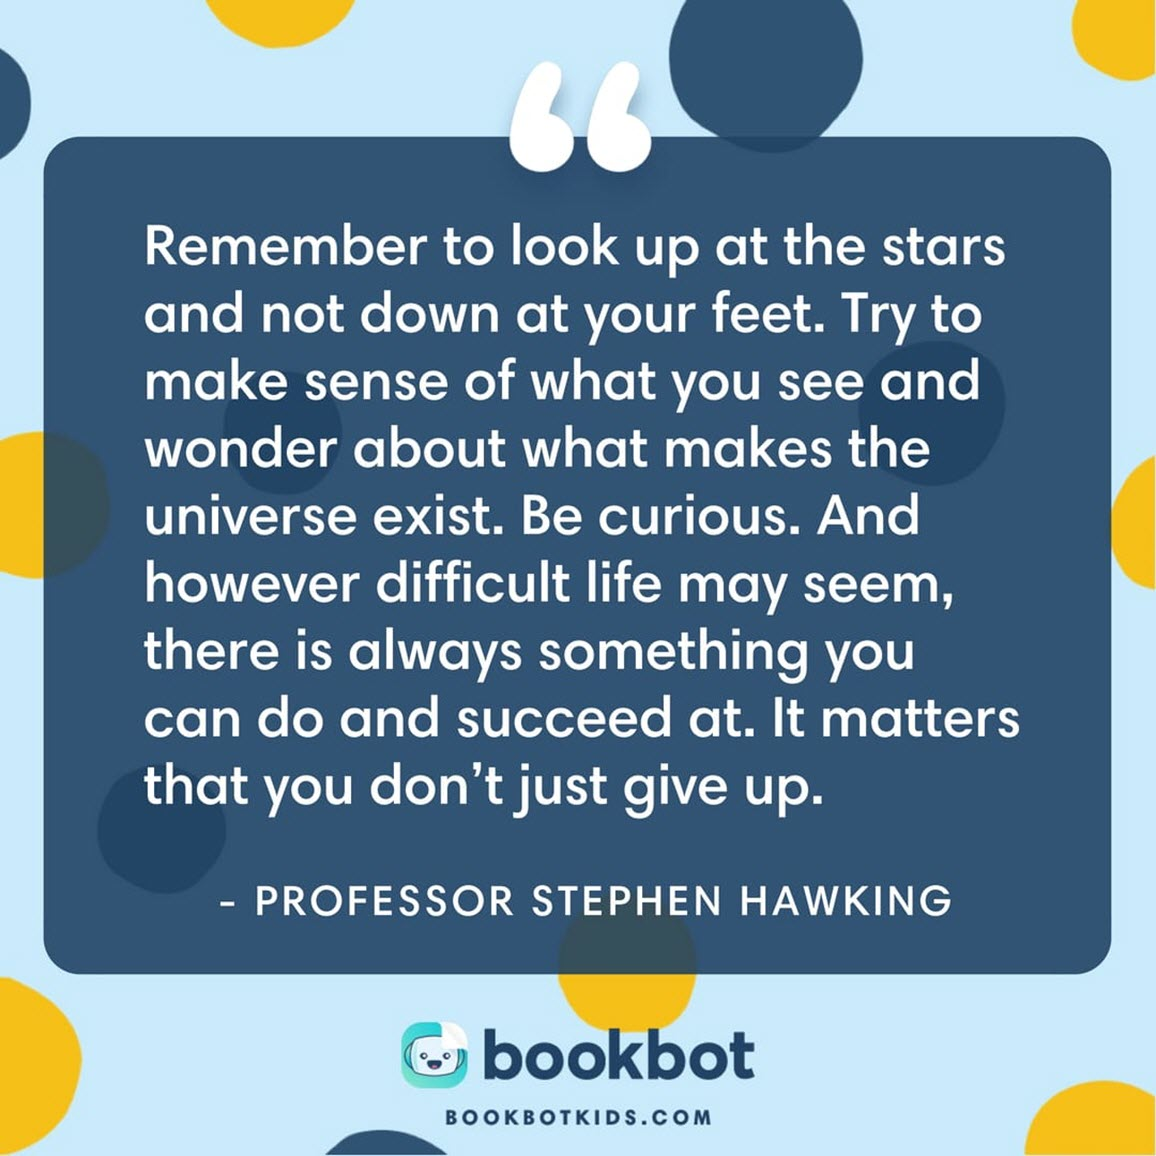 Remember to look up at the stars and not down at your feet. Try to make sense of what you see and wonder about what makes the universe exist. Be curious. And however difficult life may seem, there is always something you can do and succeed at. It matters that you don't just give up.  – Professor Stephen Hawking